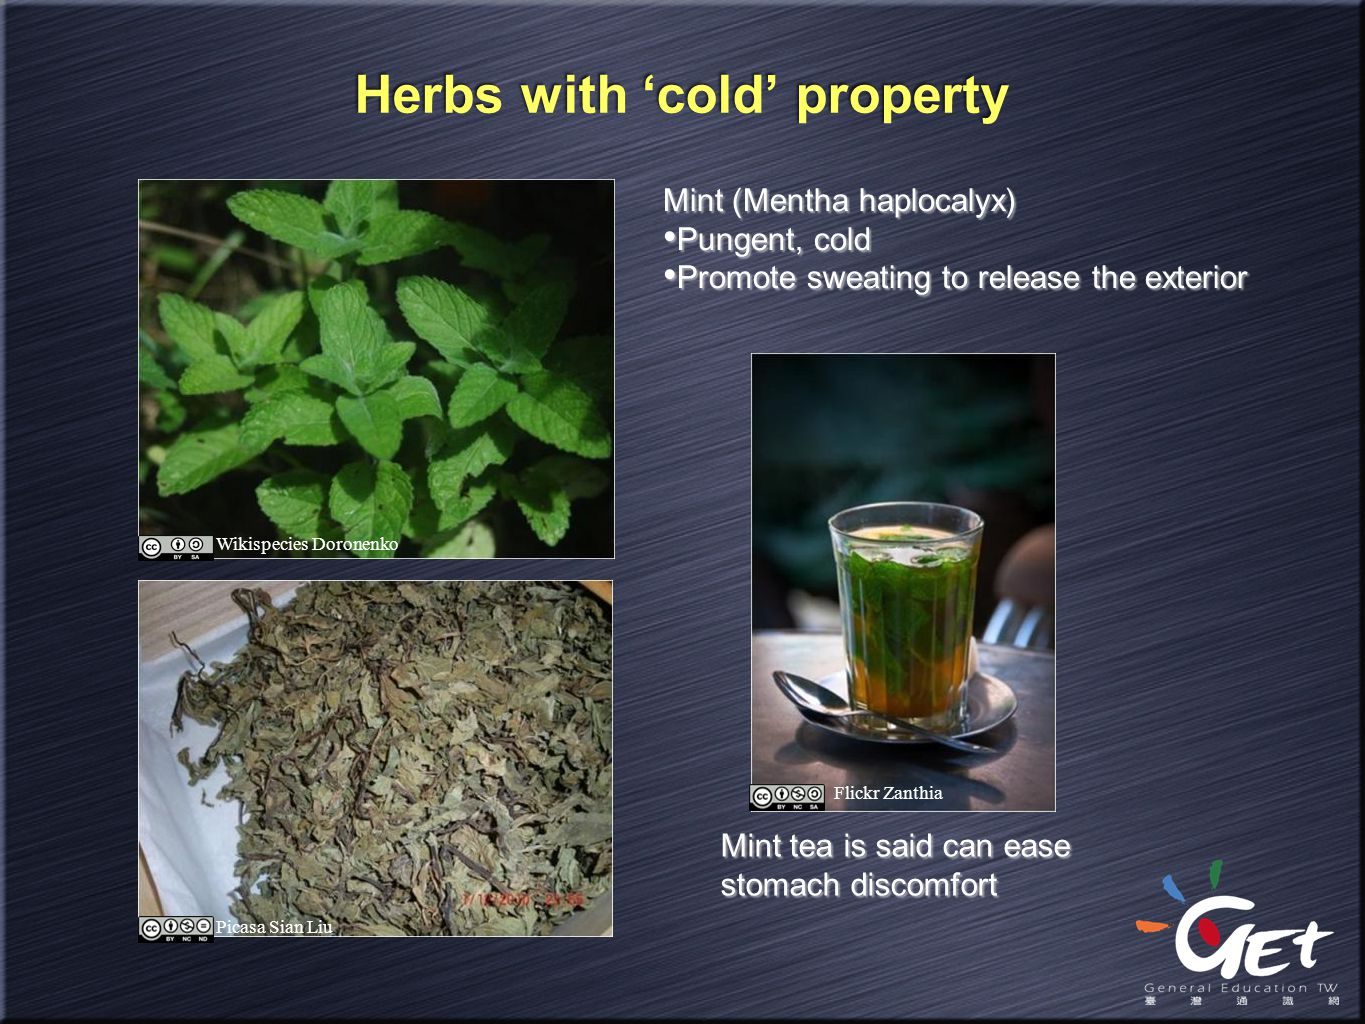 Herbs with 'cold' property